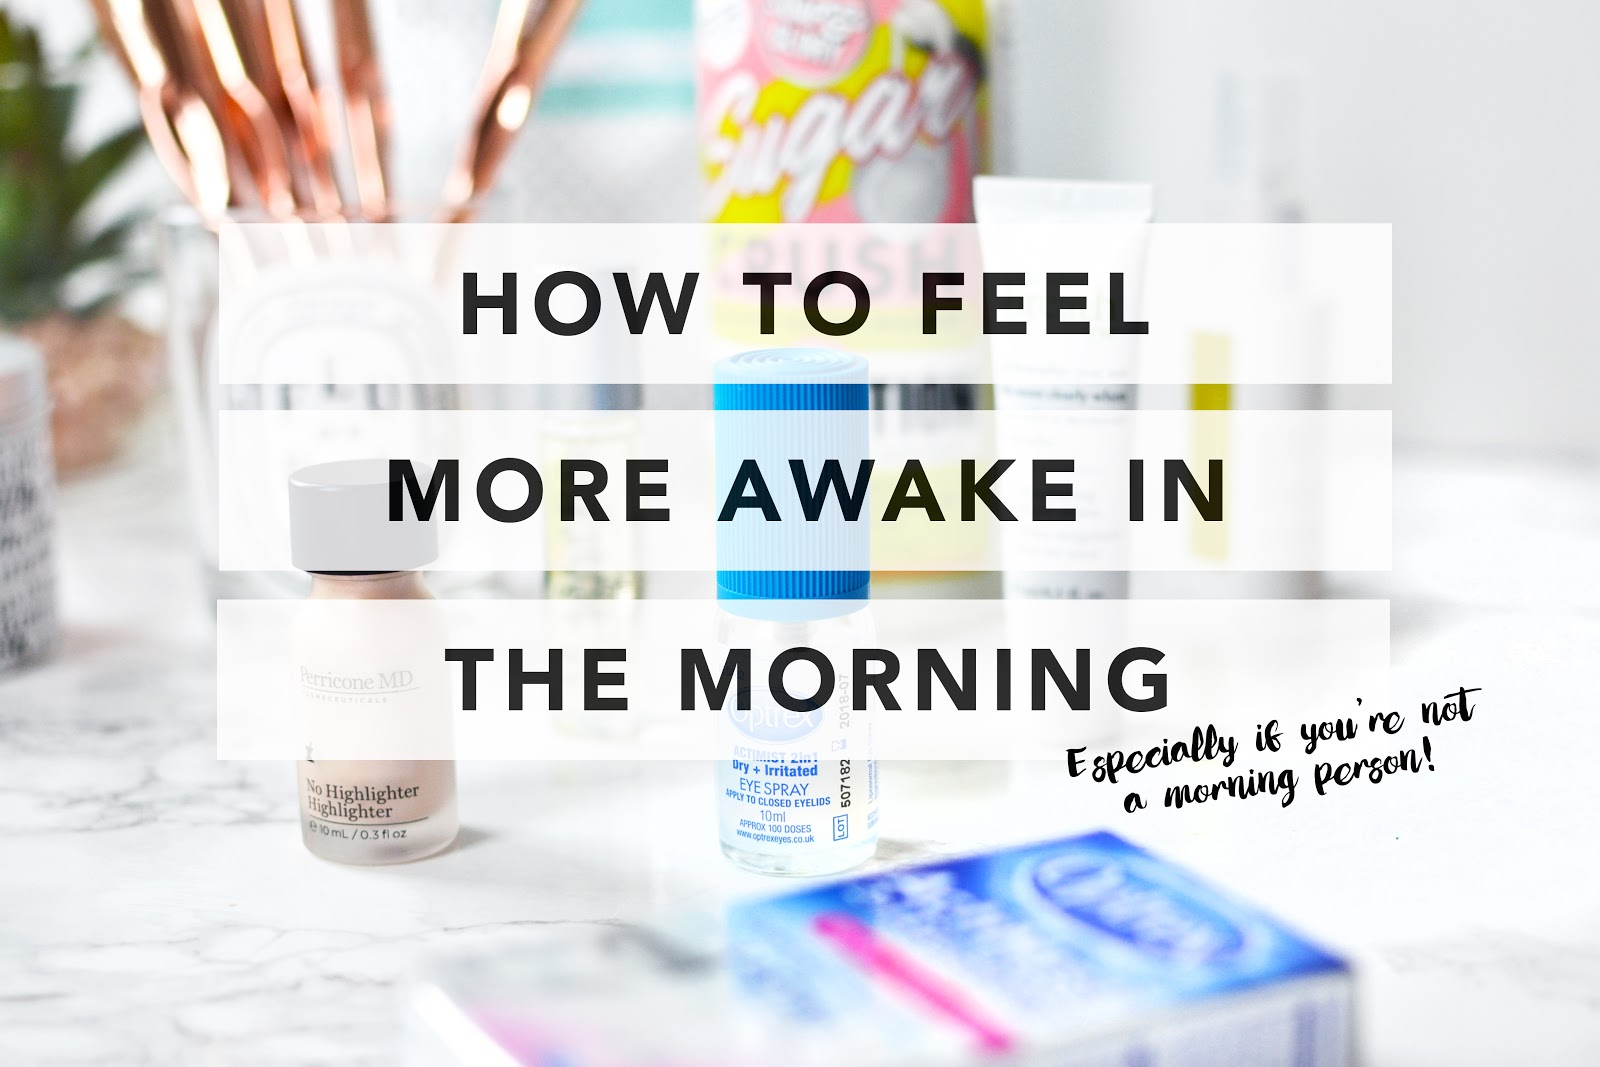 Tips On How To Feel More Awake In The Morning (when you're not a morning person!)